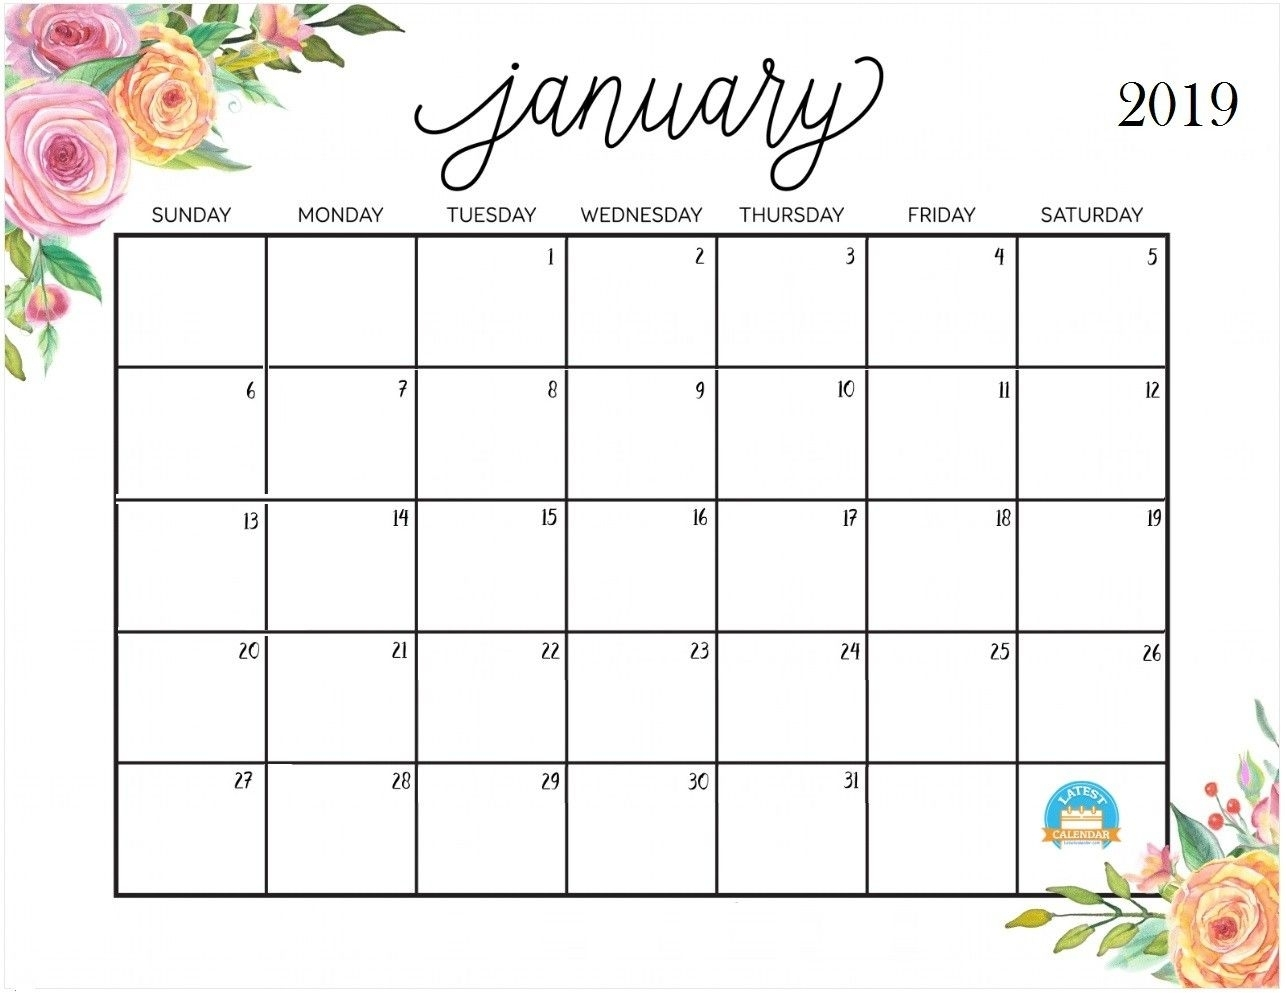 Cute January 2020 Calendar Printable Wallpapers Hd | August